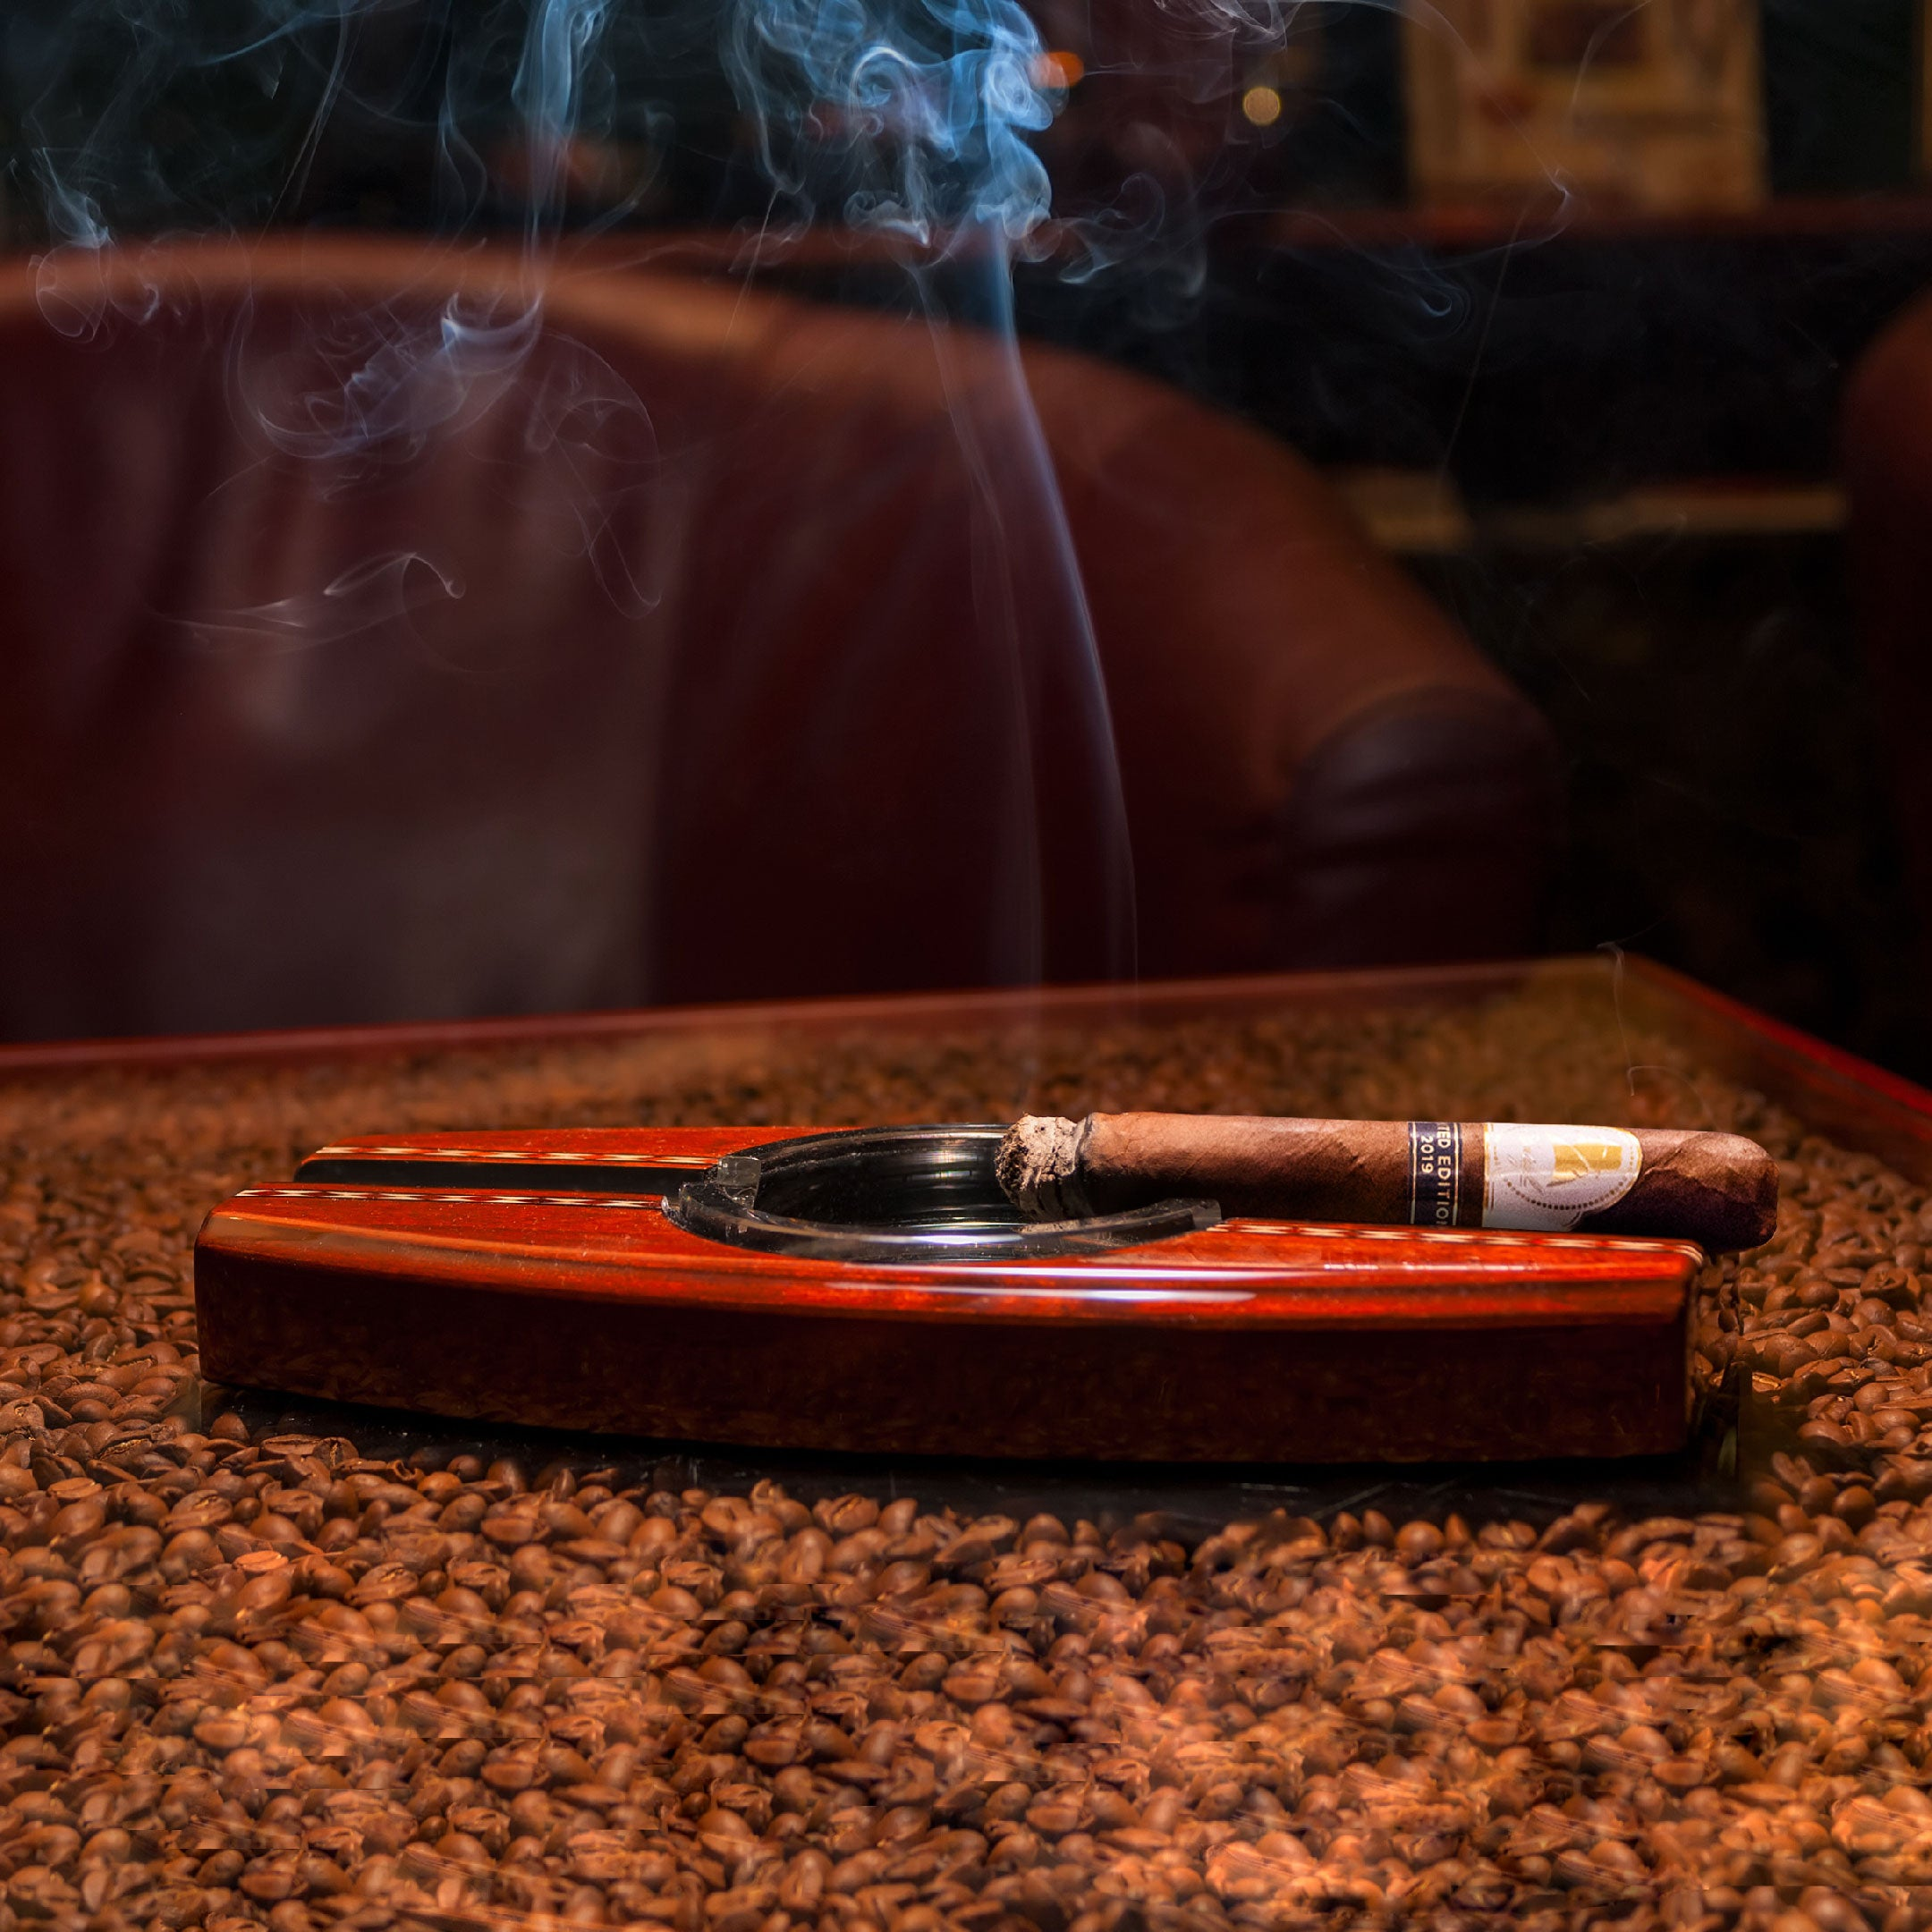 How Long Should It Take to Smoke A Cigar?